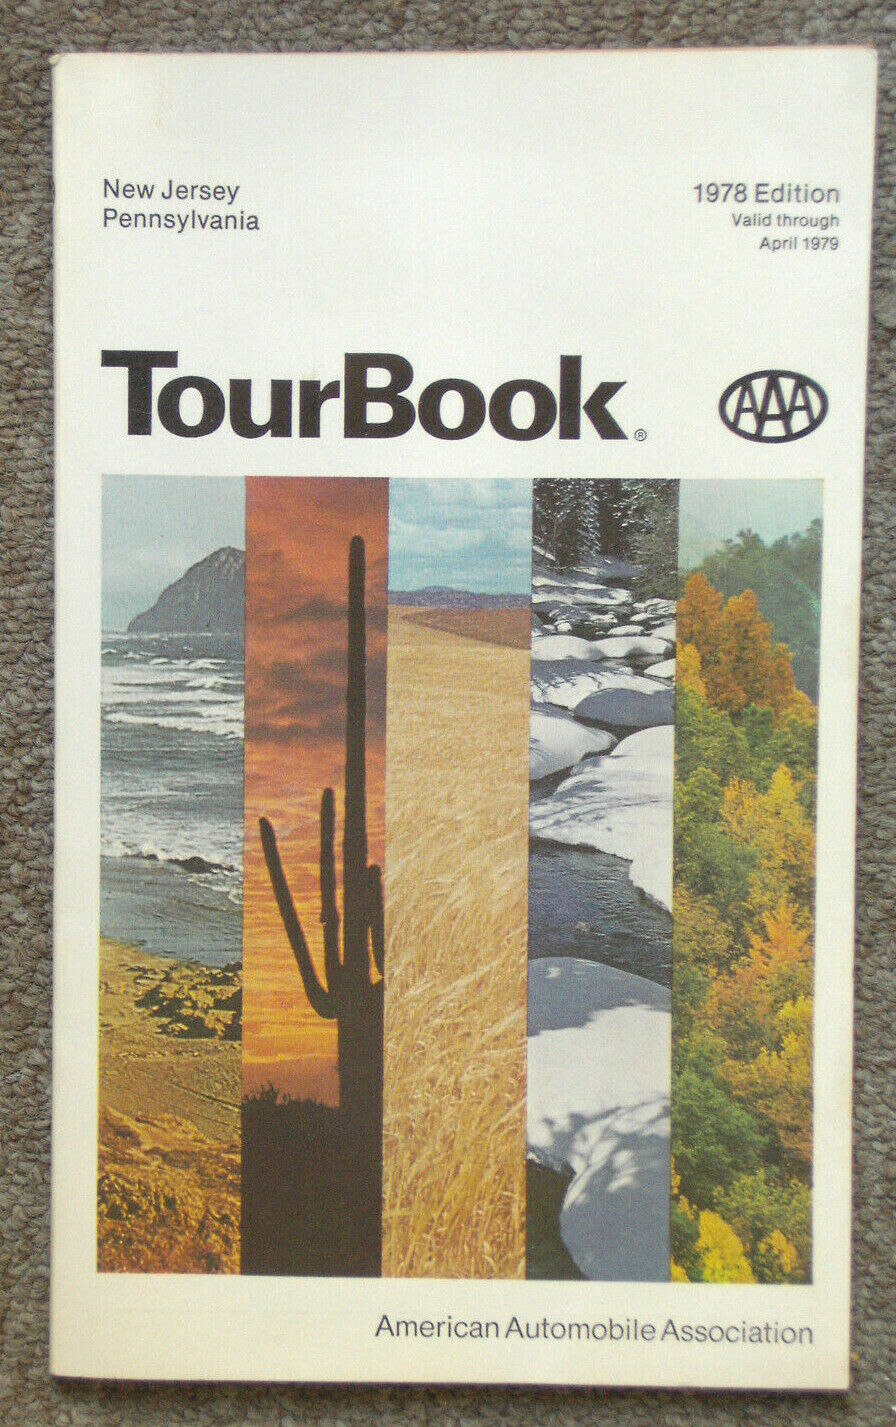 Vintage AAA Tour Book New Jersey Pennsylvania 1978 Edition - $0.99